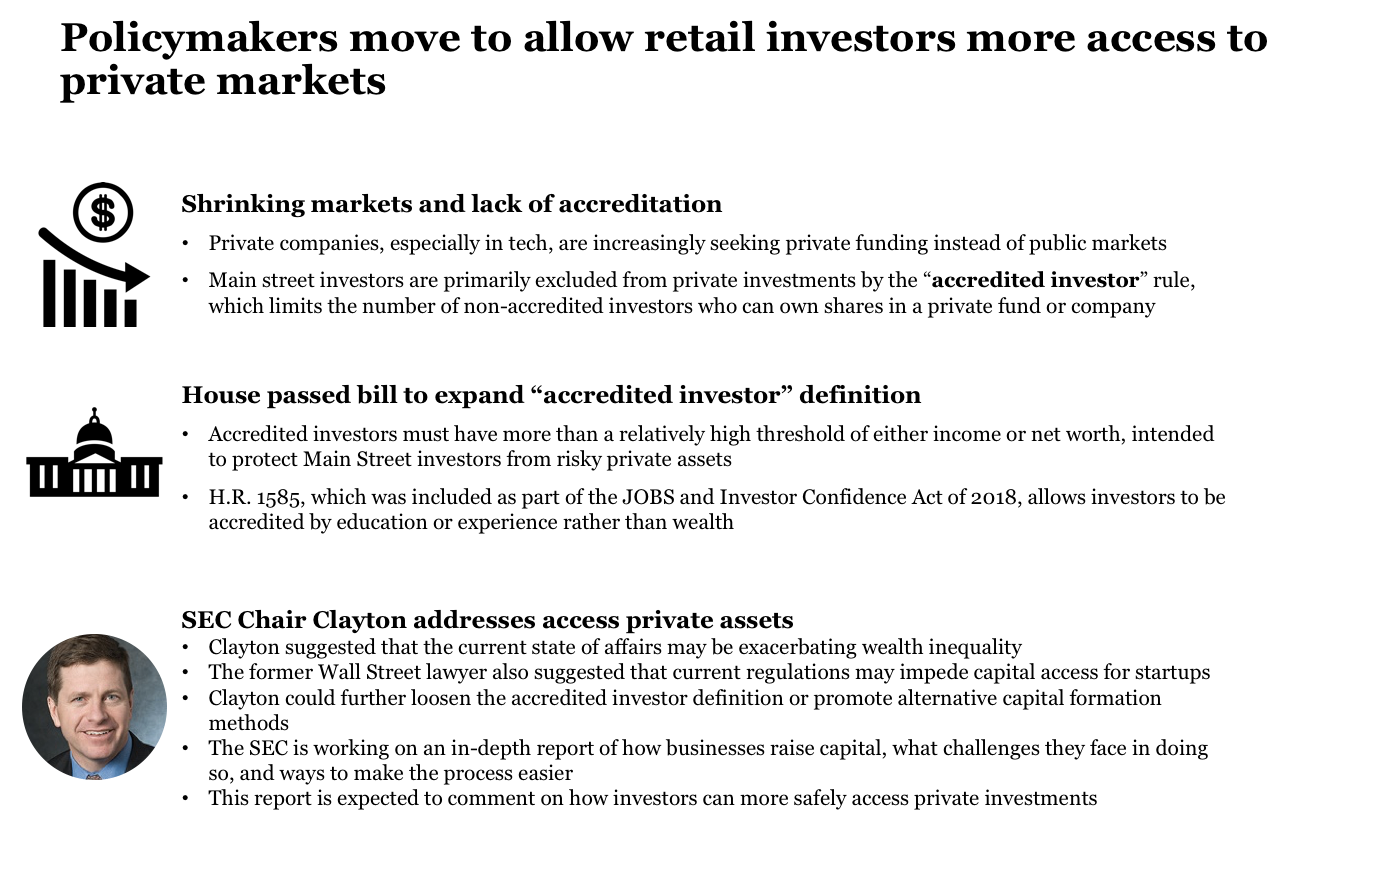 Policymakers consider loosening access to private markets